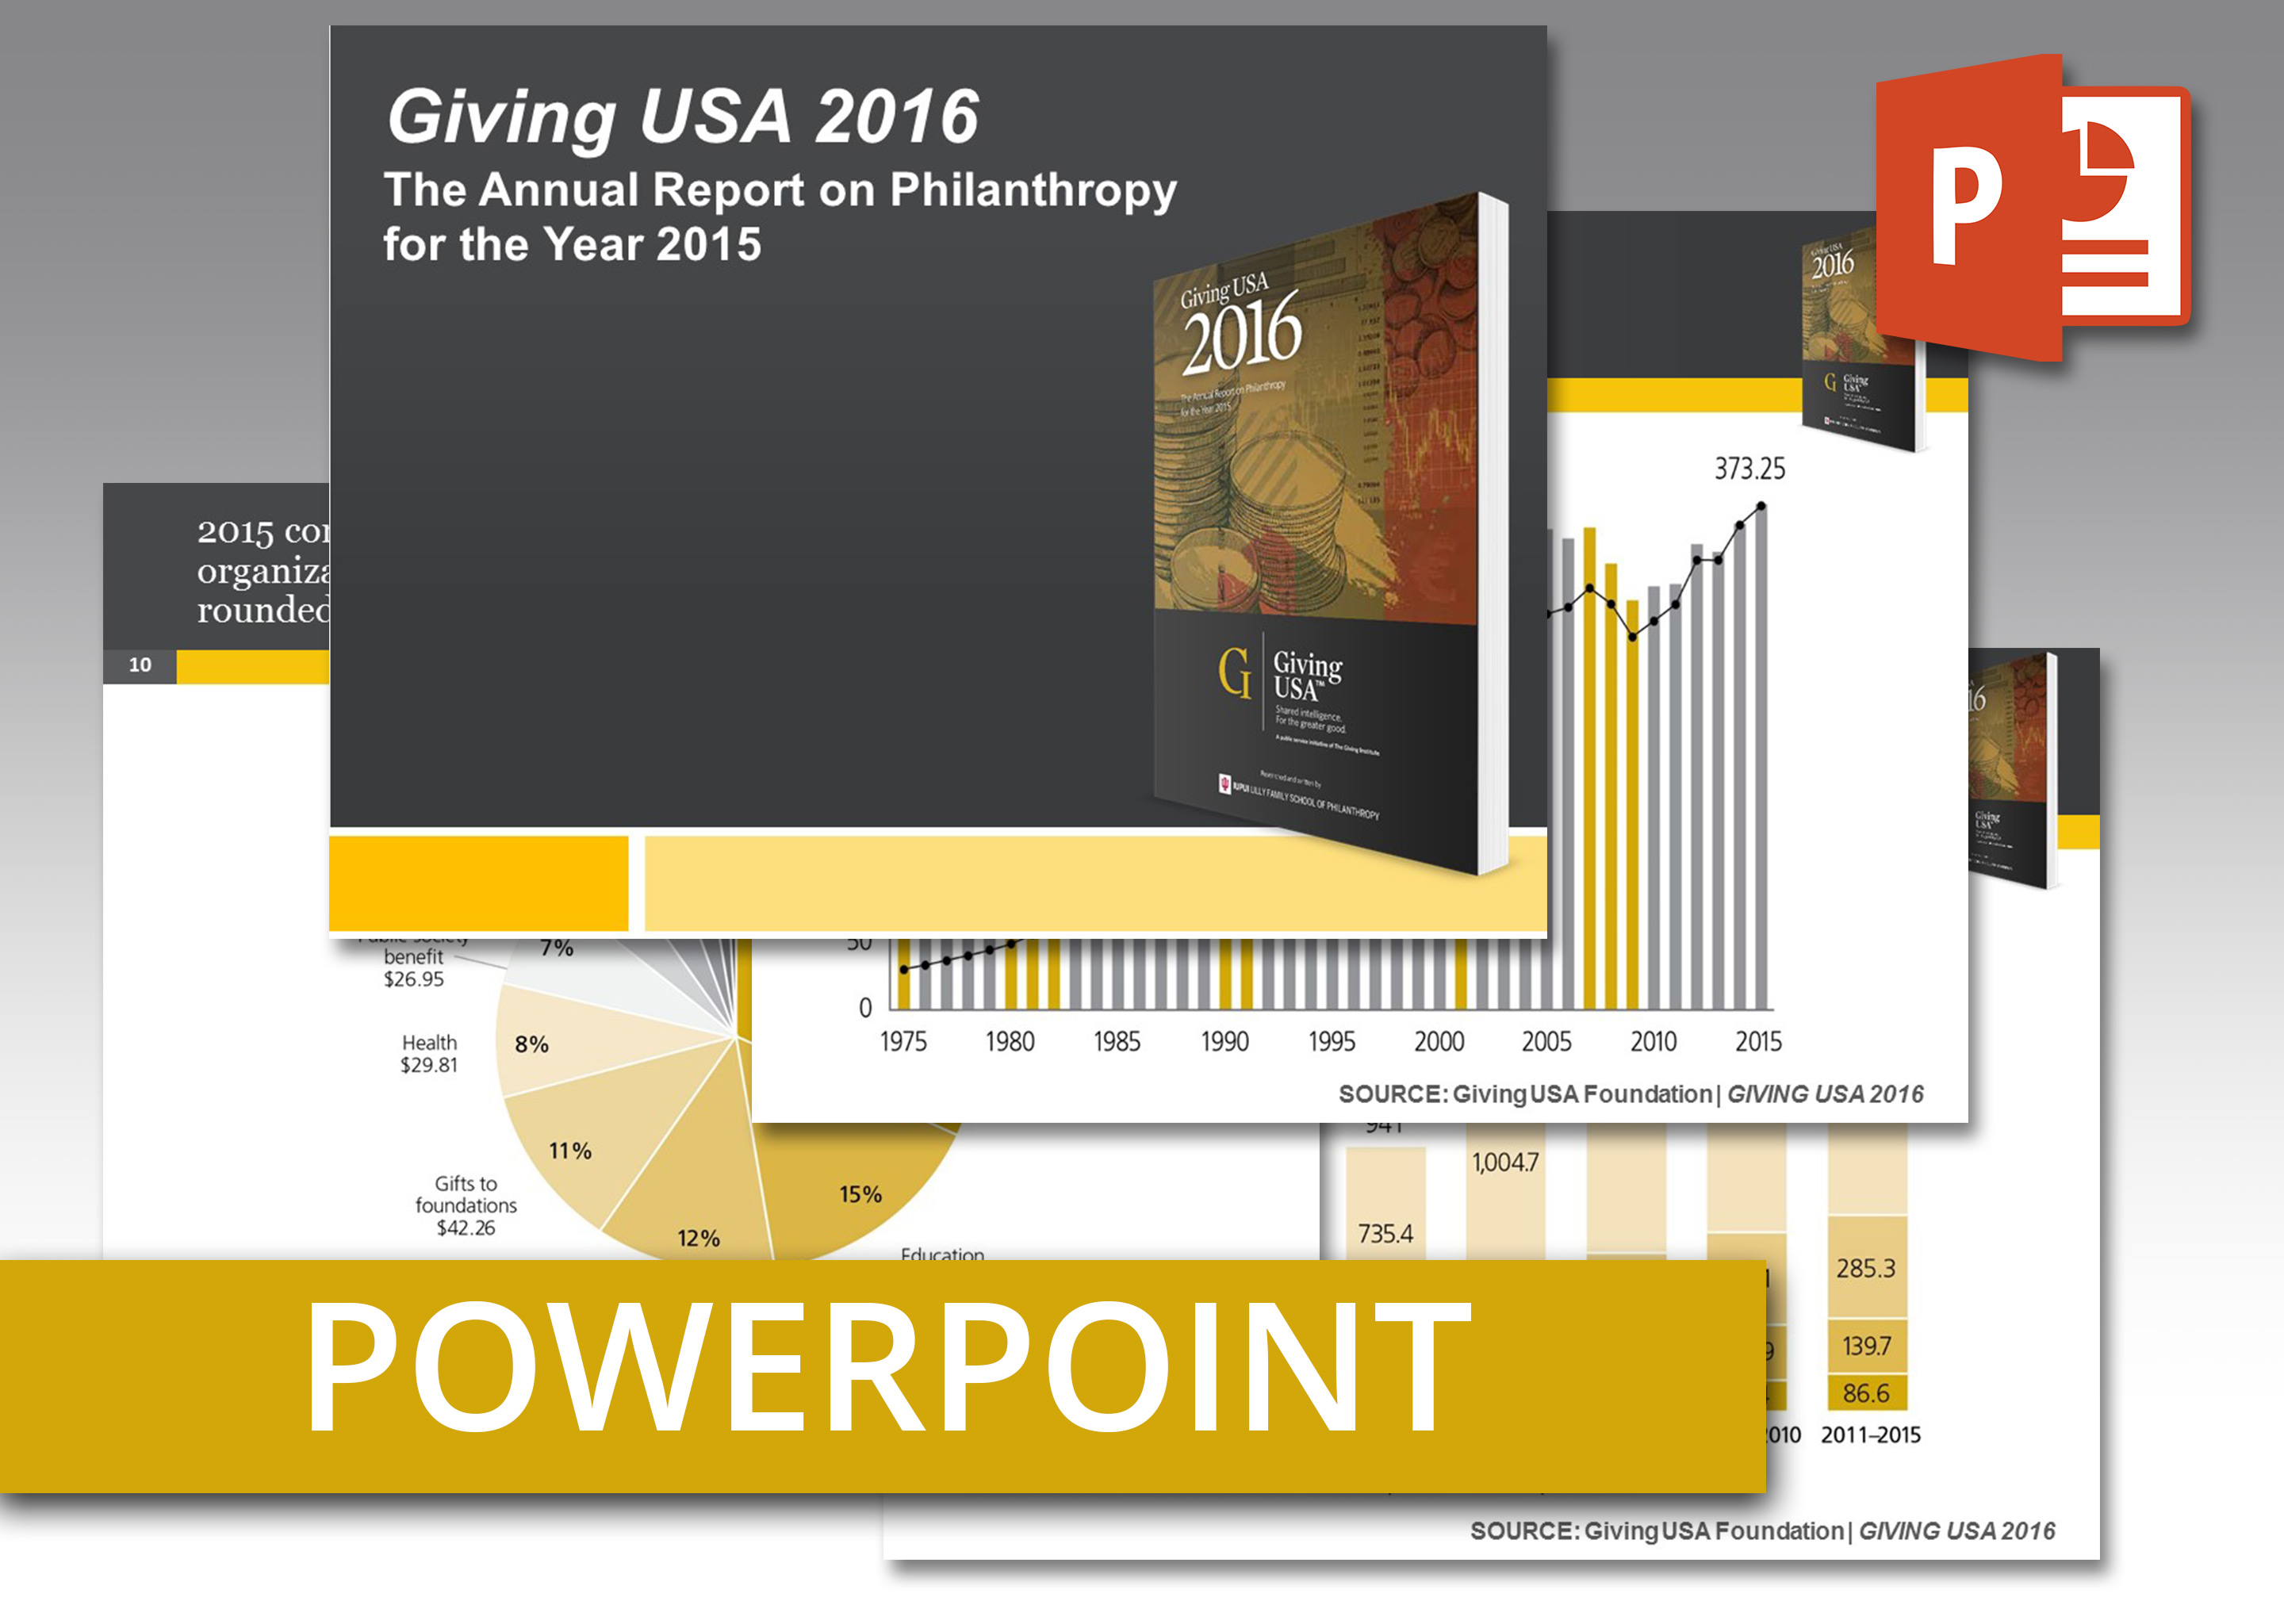 Coolmathgamesus  Unique Giving Usa  Powerpoint An Easytouse Presentation Of Report  With Outstanding Giving Usa  Powerpoint An Easytouse Presentation Of Report Findings Including Talking Points With Endearing Video To Powerpoint Converter Online Also Cool Backgrounds Powerpoint In Addition Microsoft Powerpoint  Tutorial And Free Moving Powerpoint Templates As Well As Esl Powerpoint Lessons Additionally Create A New Theme In Powerpoint From Givingusaorg With Coolmathgamesus  Outstanding Giving Usa  Powerpoint An Easytouse Presentation Of Report  With Endearing Giving Usa  Powerpoint An Easytouse Presentation Of Report Findings Including Talking Points And Unique Video To Powerpoint Converter Online Also Cool Backgrounds Powerpoint In Addition Microsoft Powerpoint  Tutorial From Givingusaorg